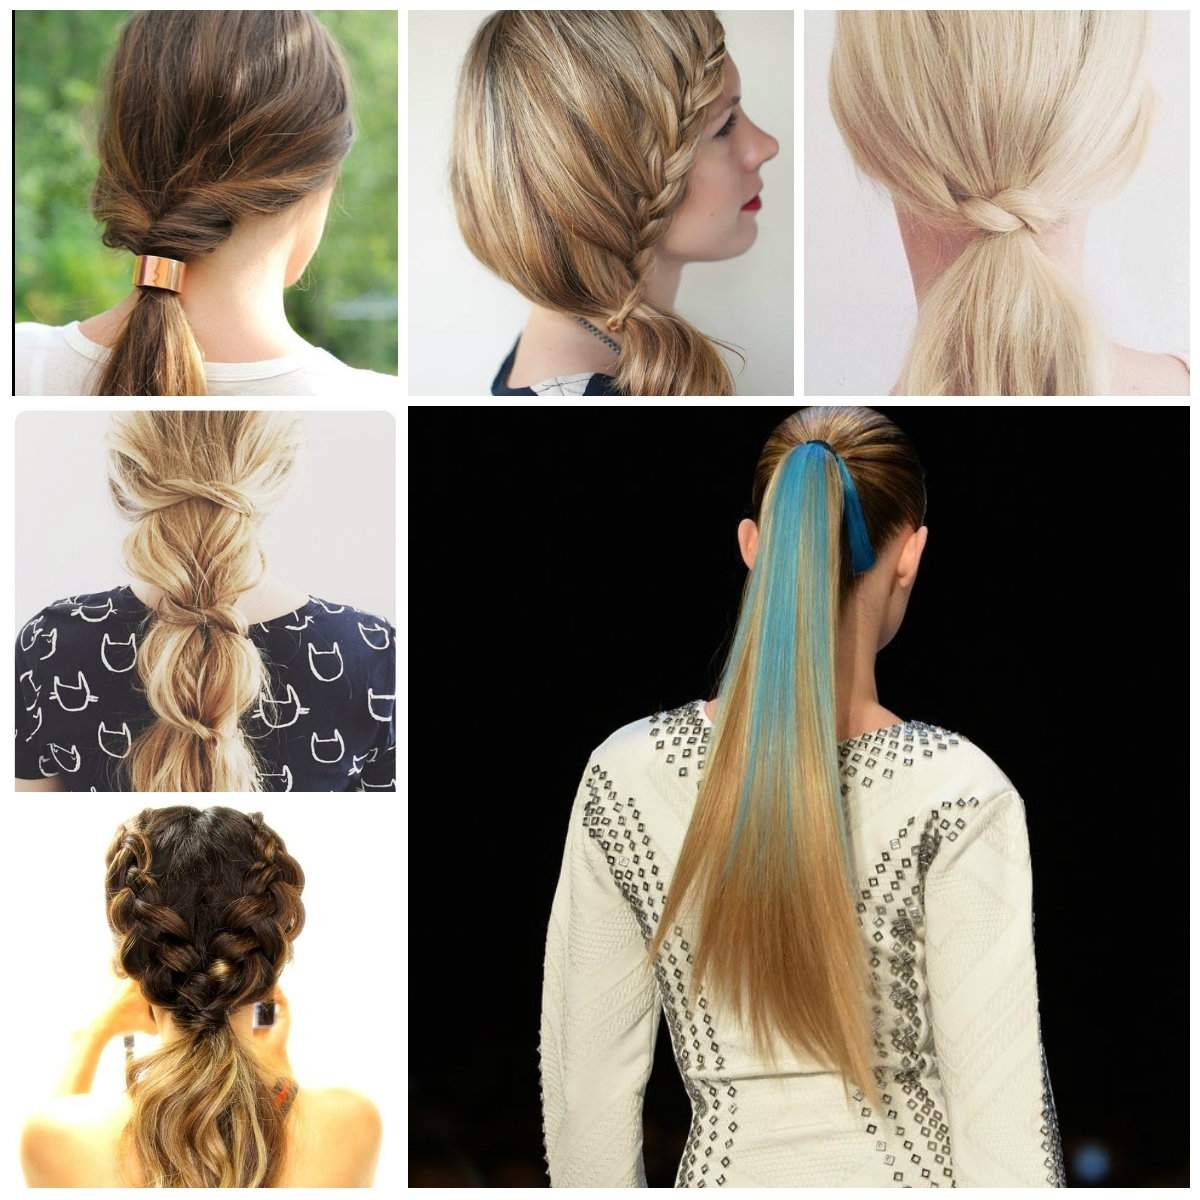 Hairstyles For Women 2019, Haircuts For Long (View 10 of 20)